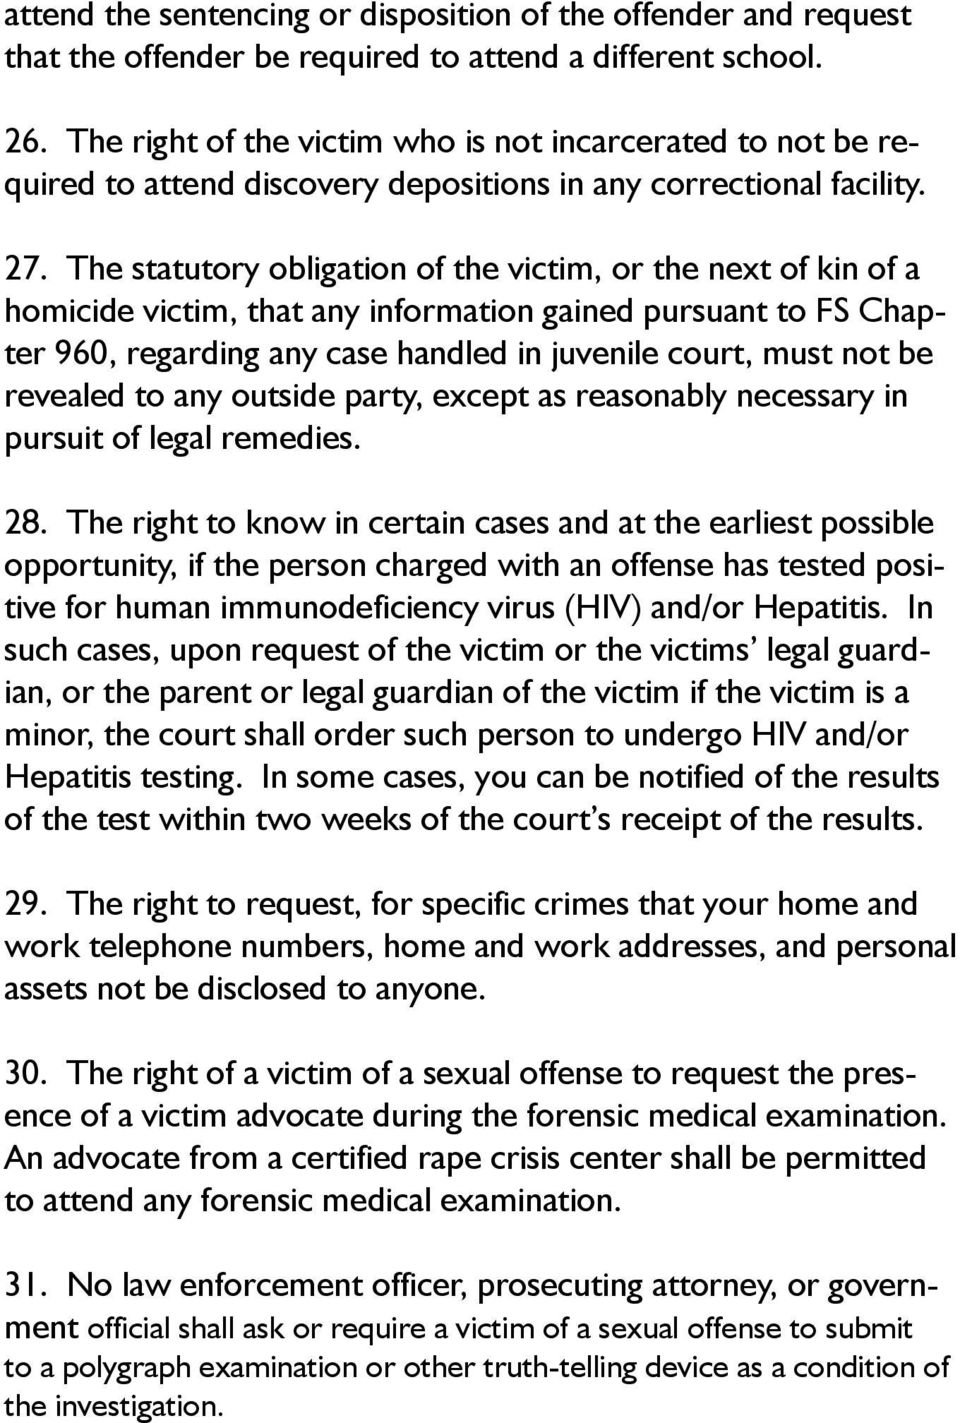 The statutory obligation of the victim, or the next of kin of a homicide victim, that any information gained pursuant to FS Chapter 960, regarding any case handled in juvenile court, must not be